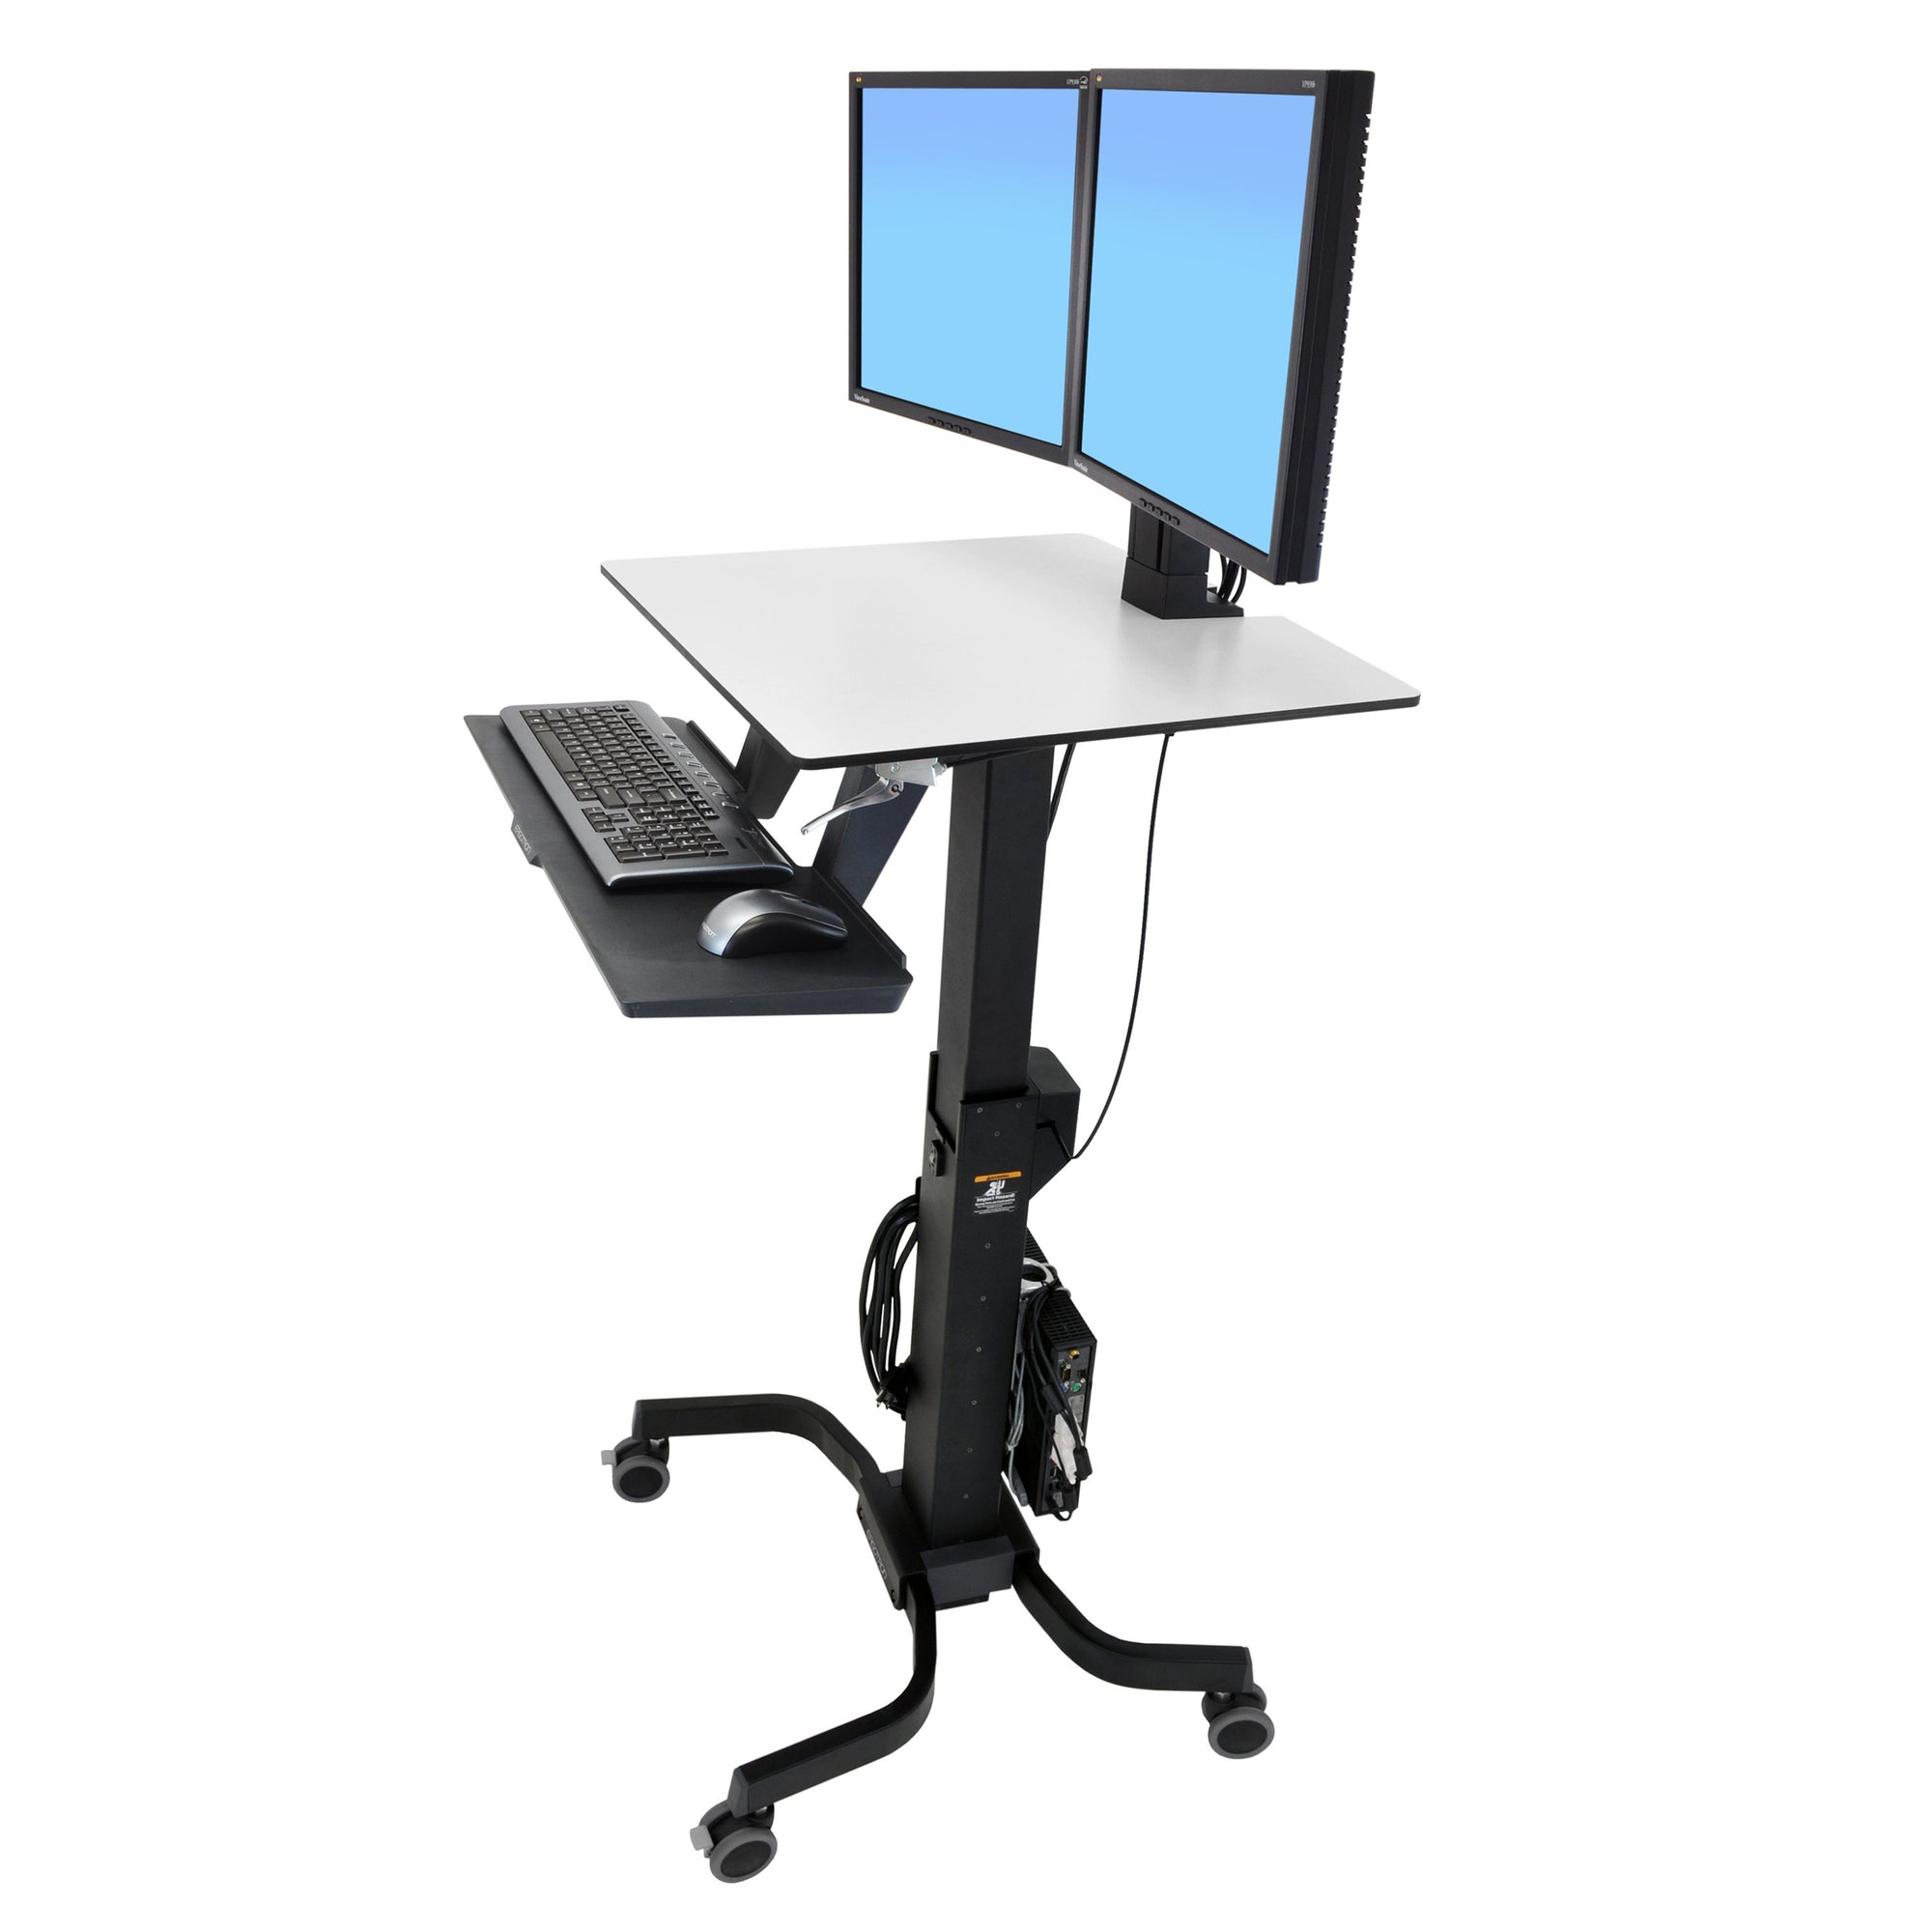 Ergotron WorkFit-C Dual Sit-Stand Workstation 24-214-085